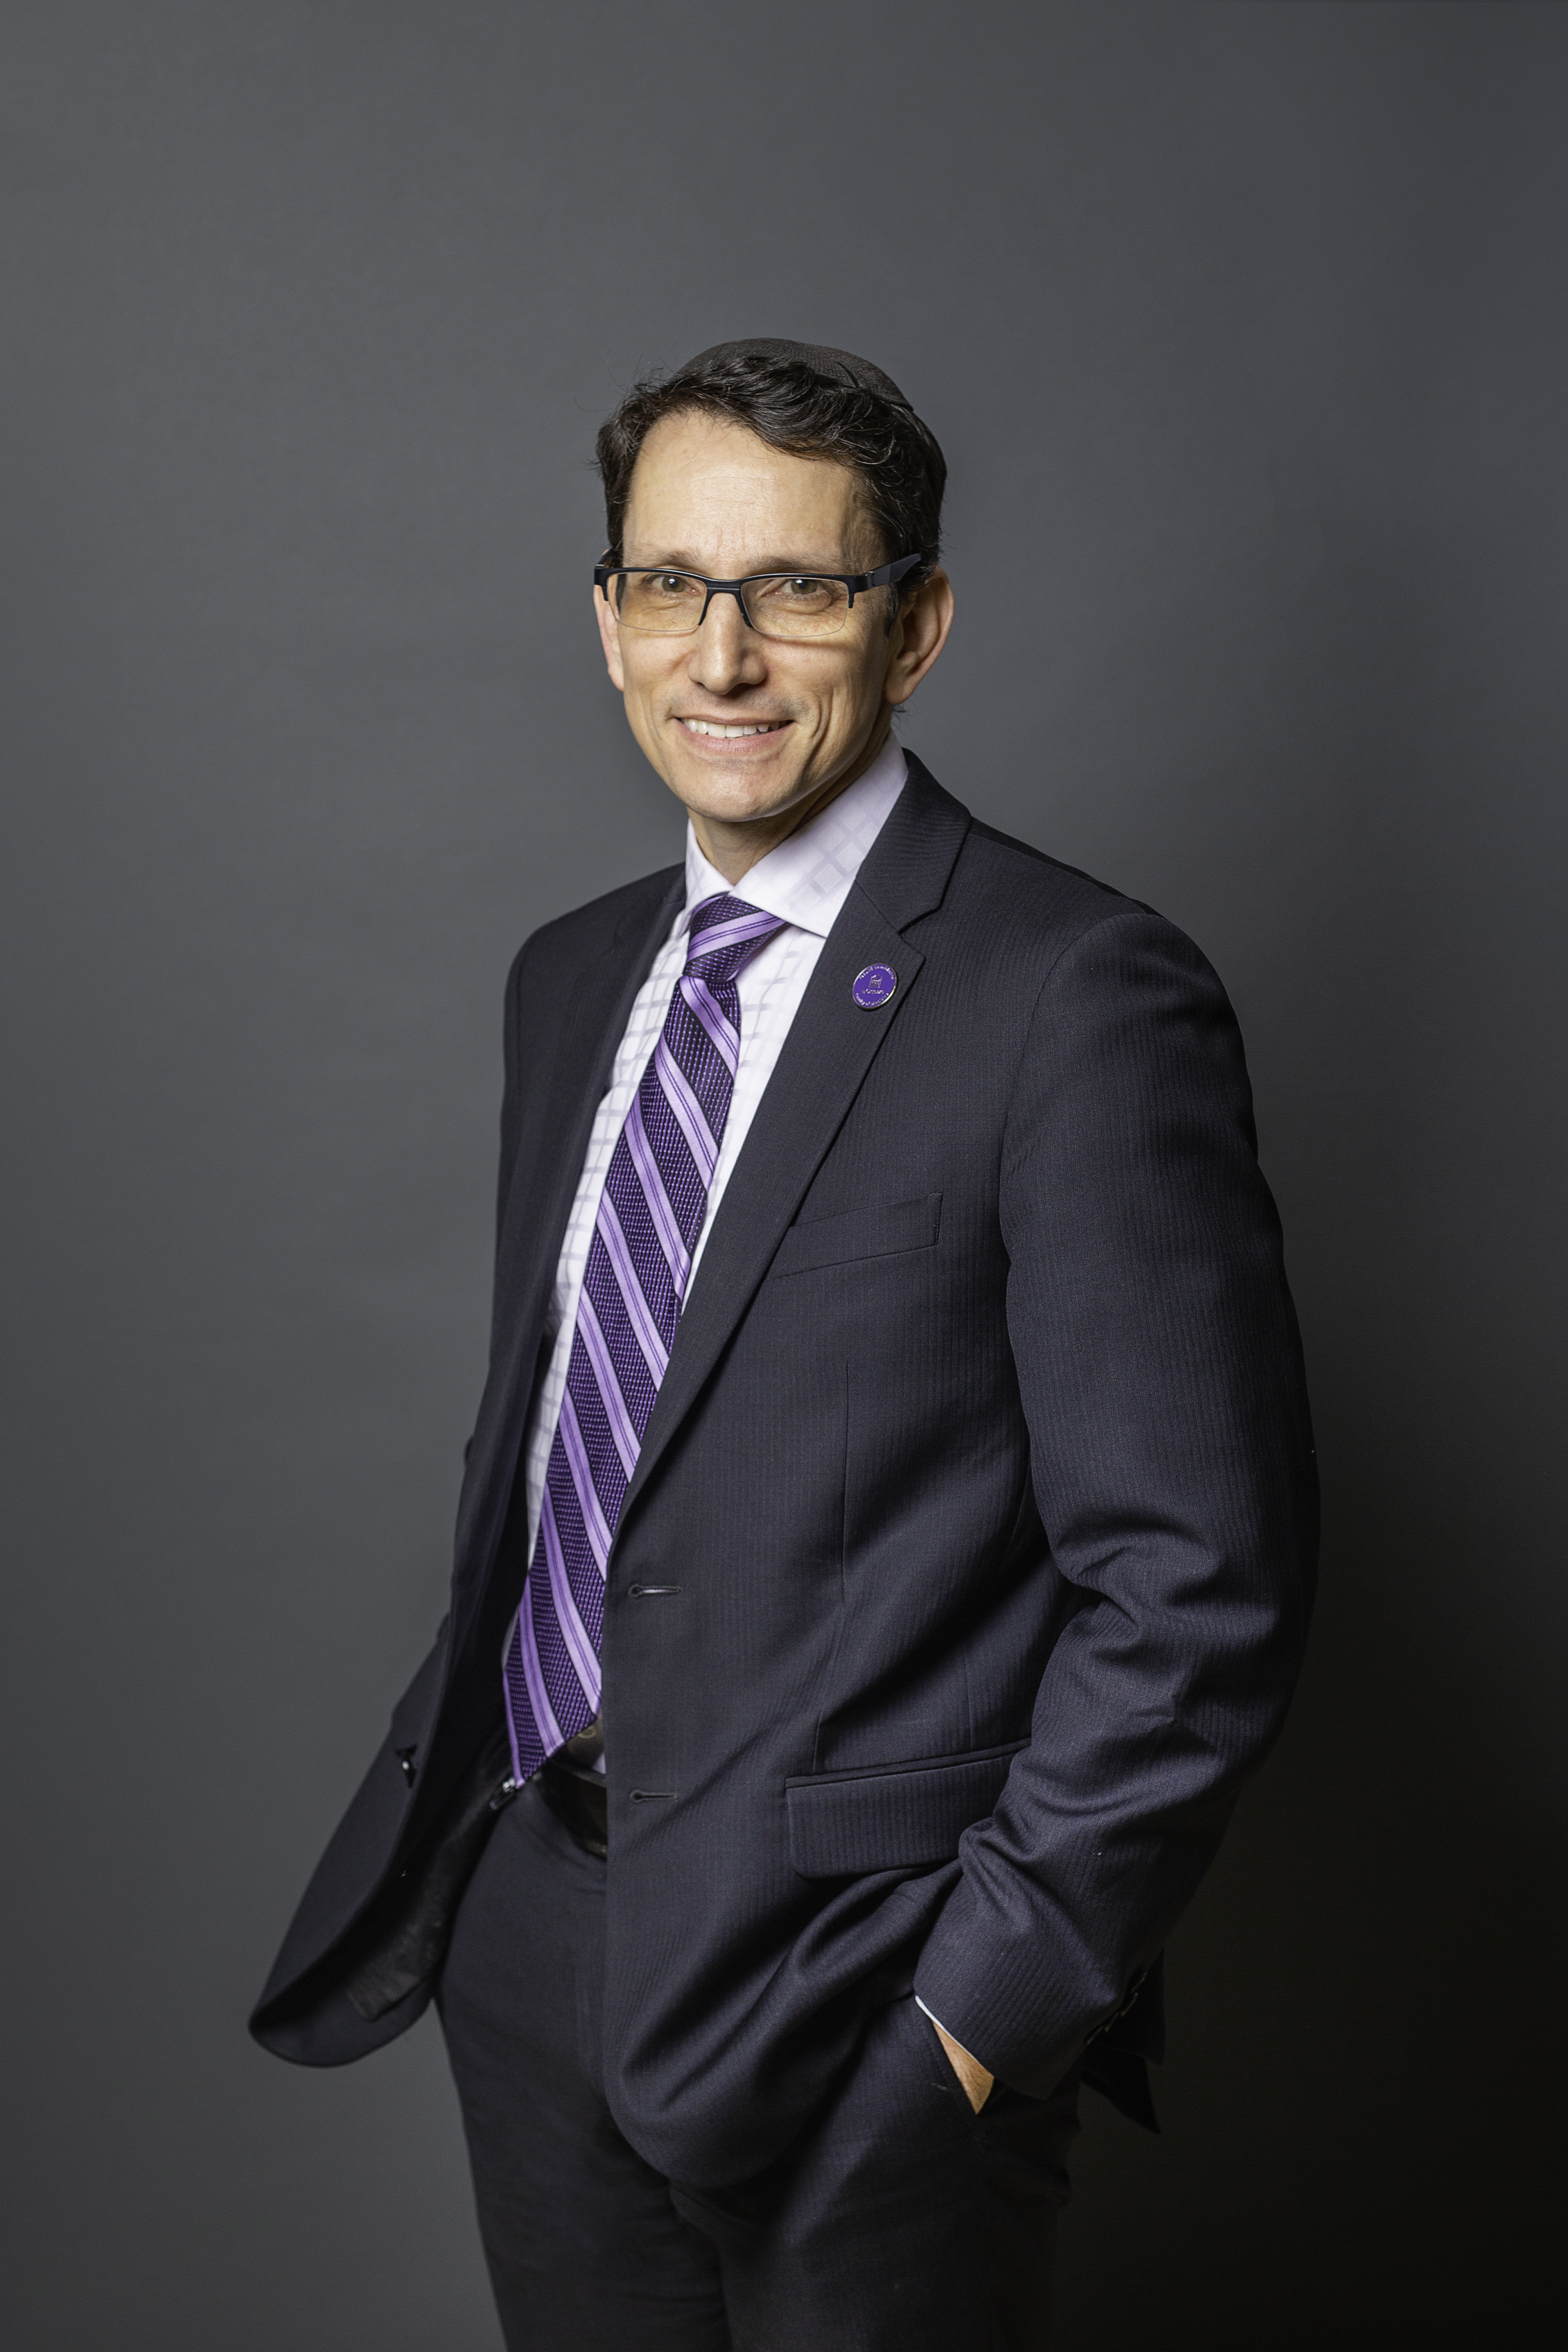 Dr. Richard Aviv